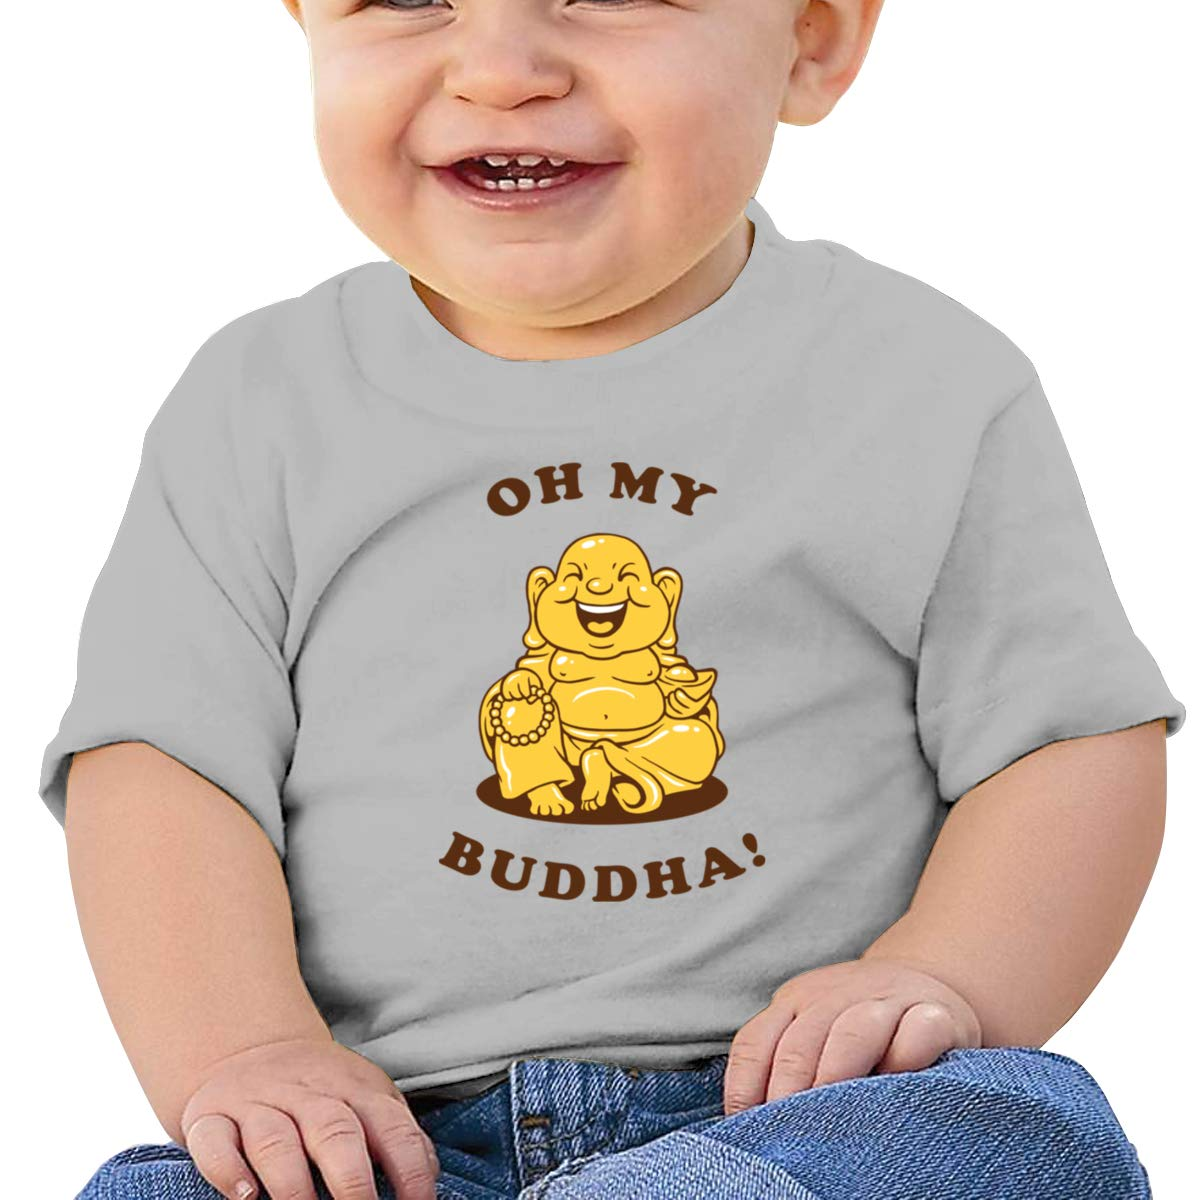 Oh My Buddha Infan Short Sleeve Top Boys Birthday Gift